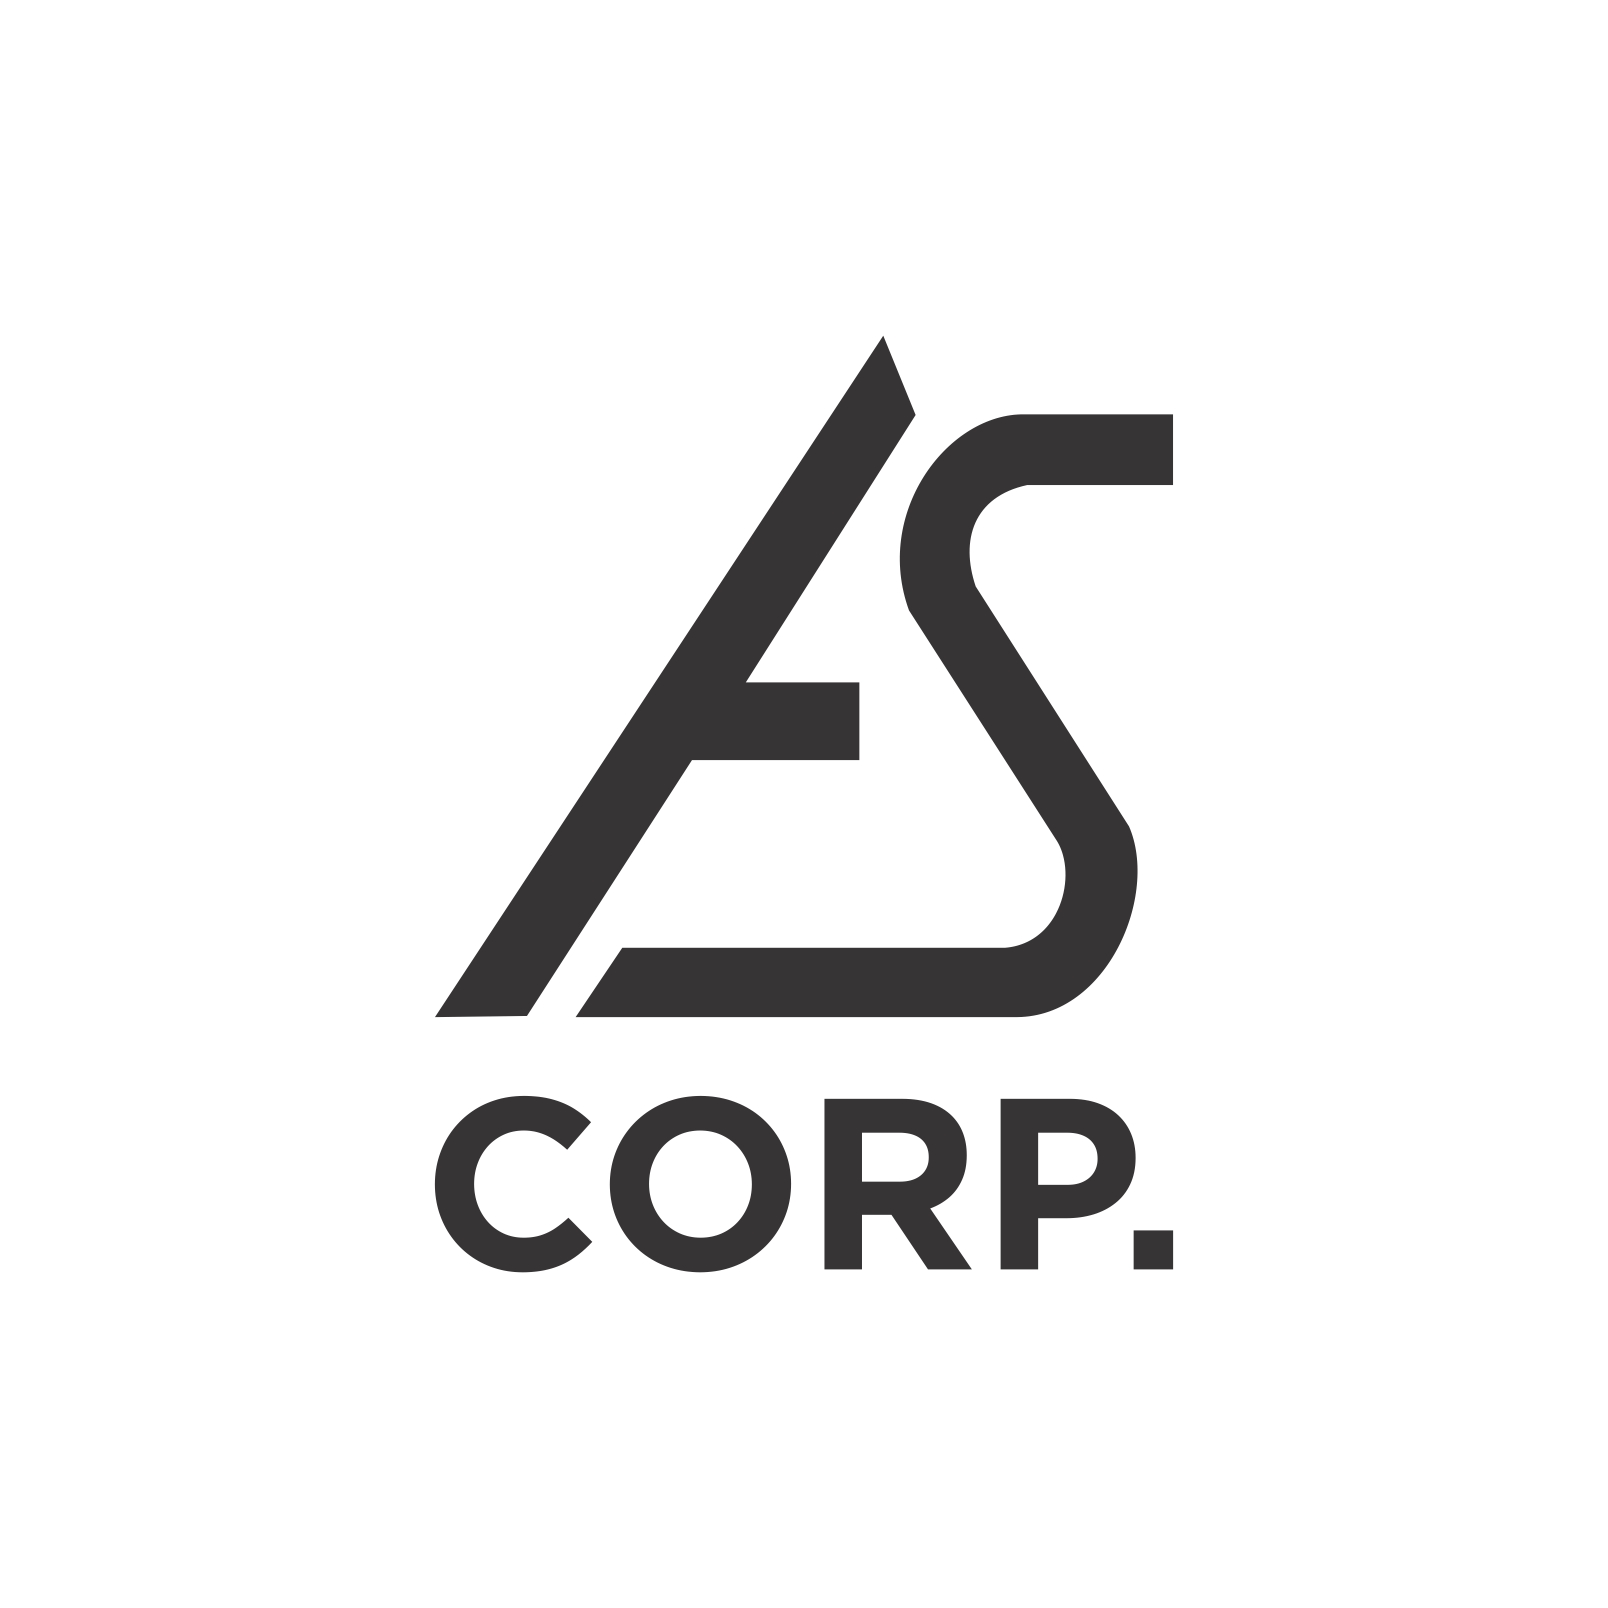 A.S Corp